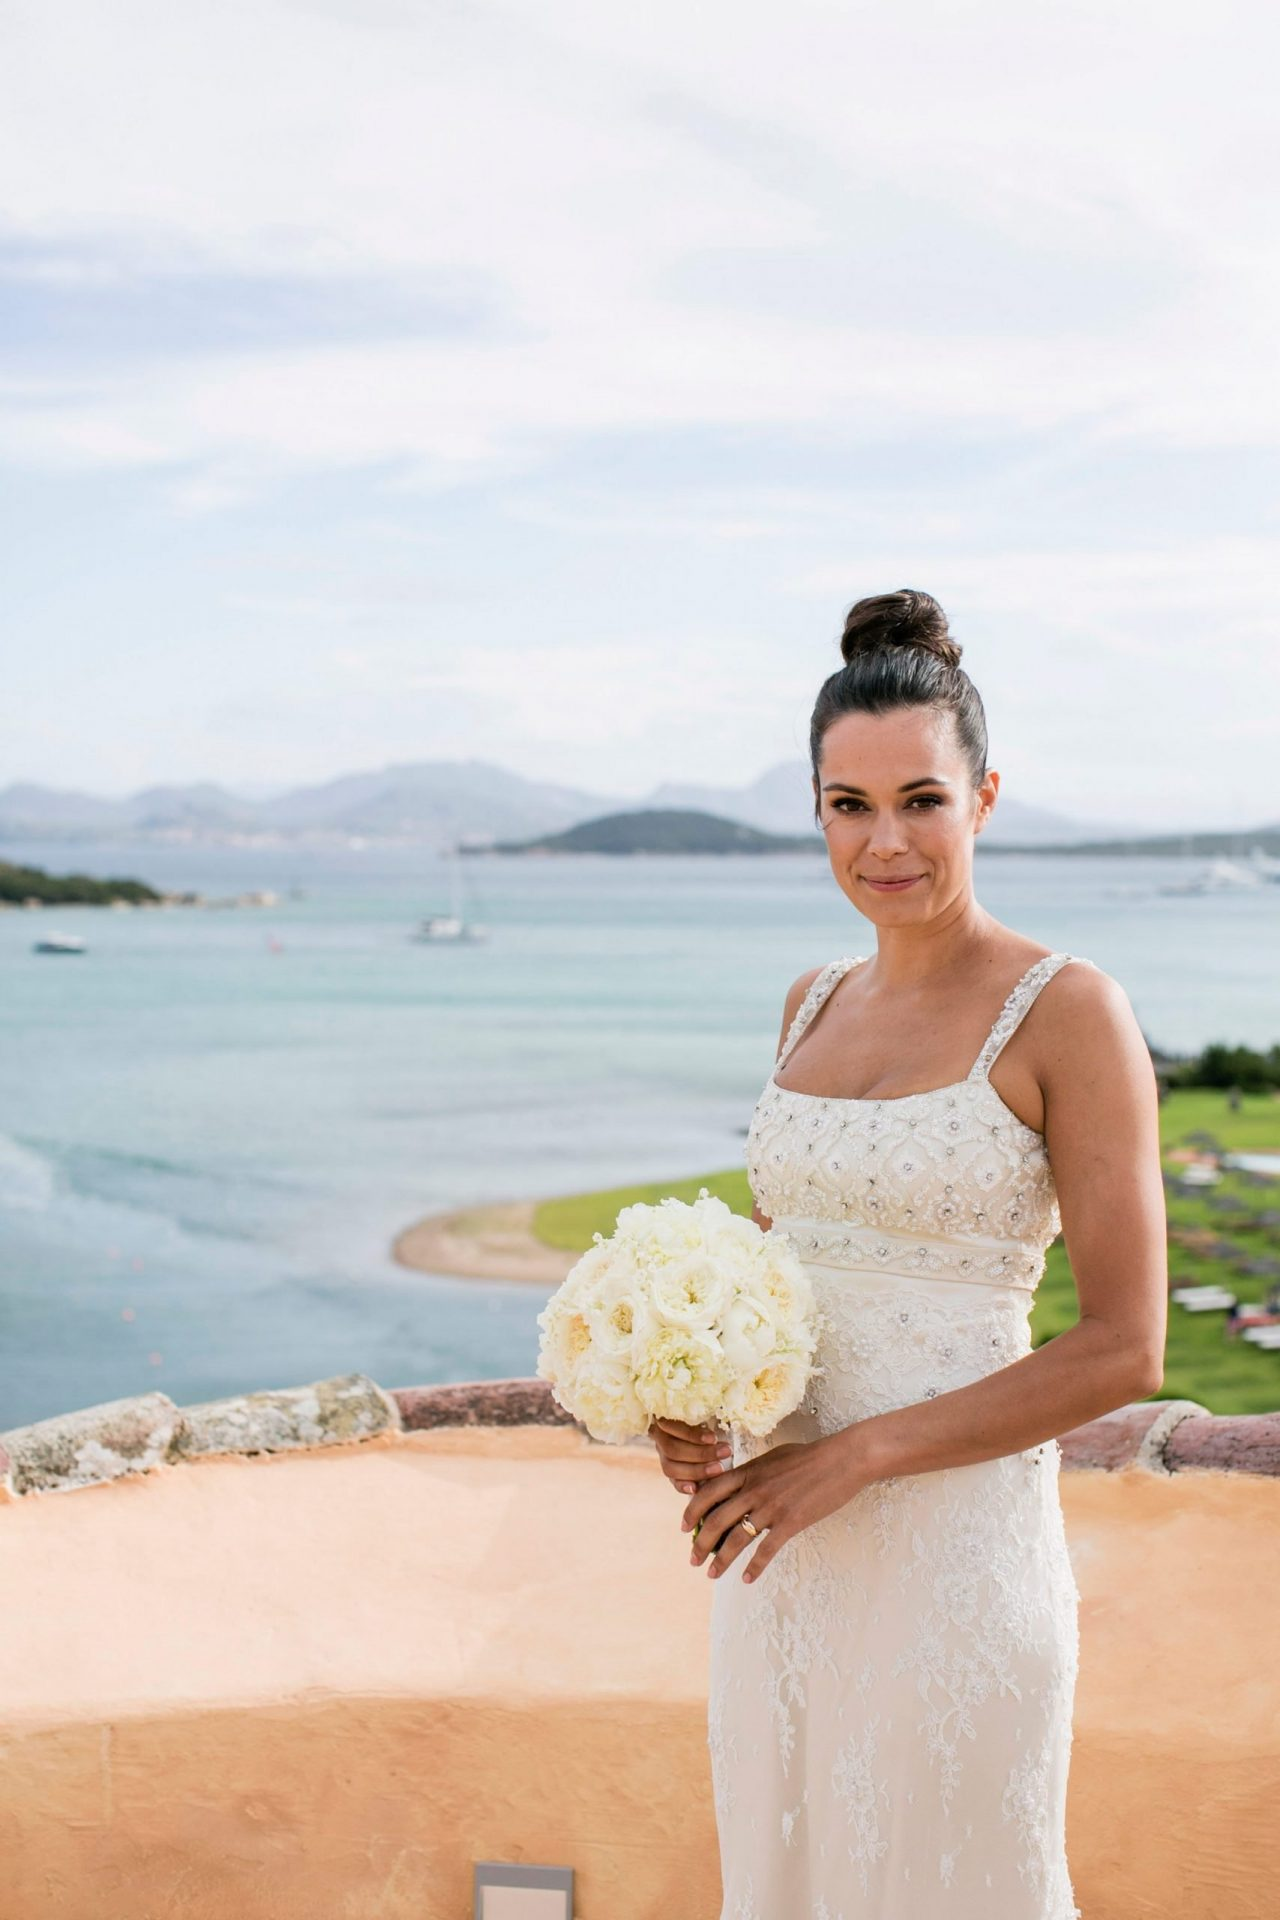 Lisa and Daniel, luxury wedding in Cala di Volpe, the bride